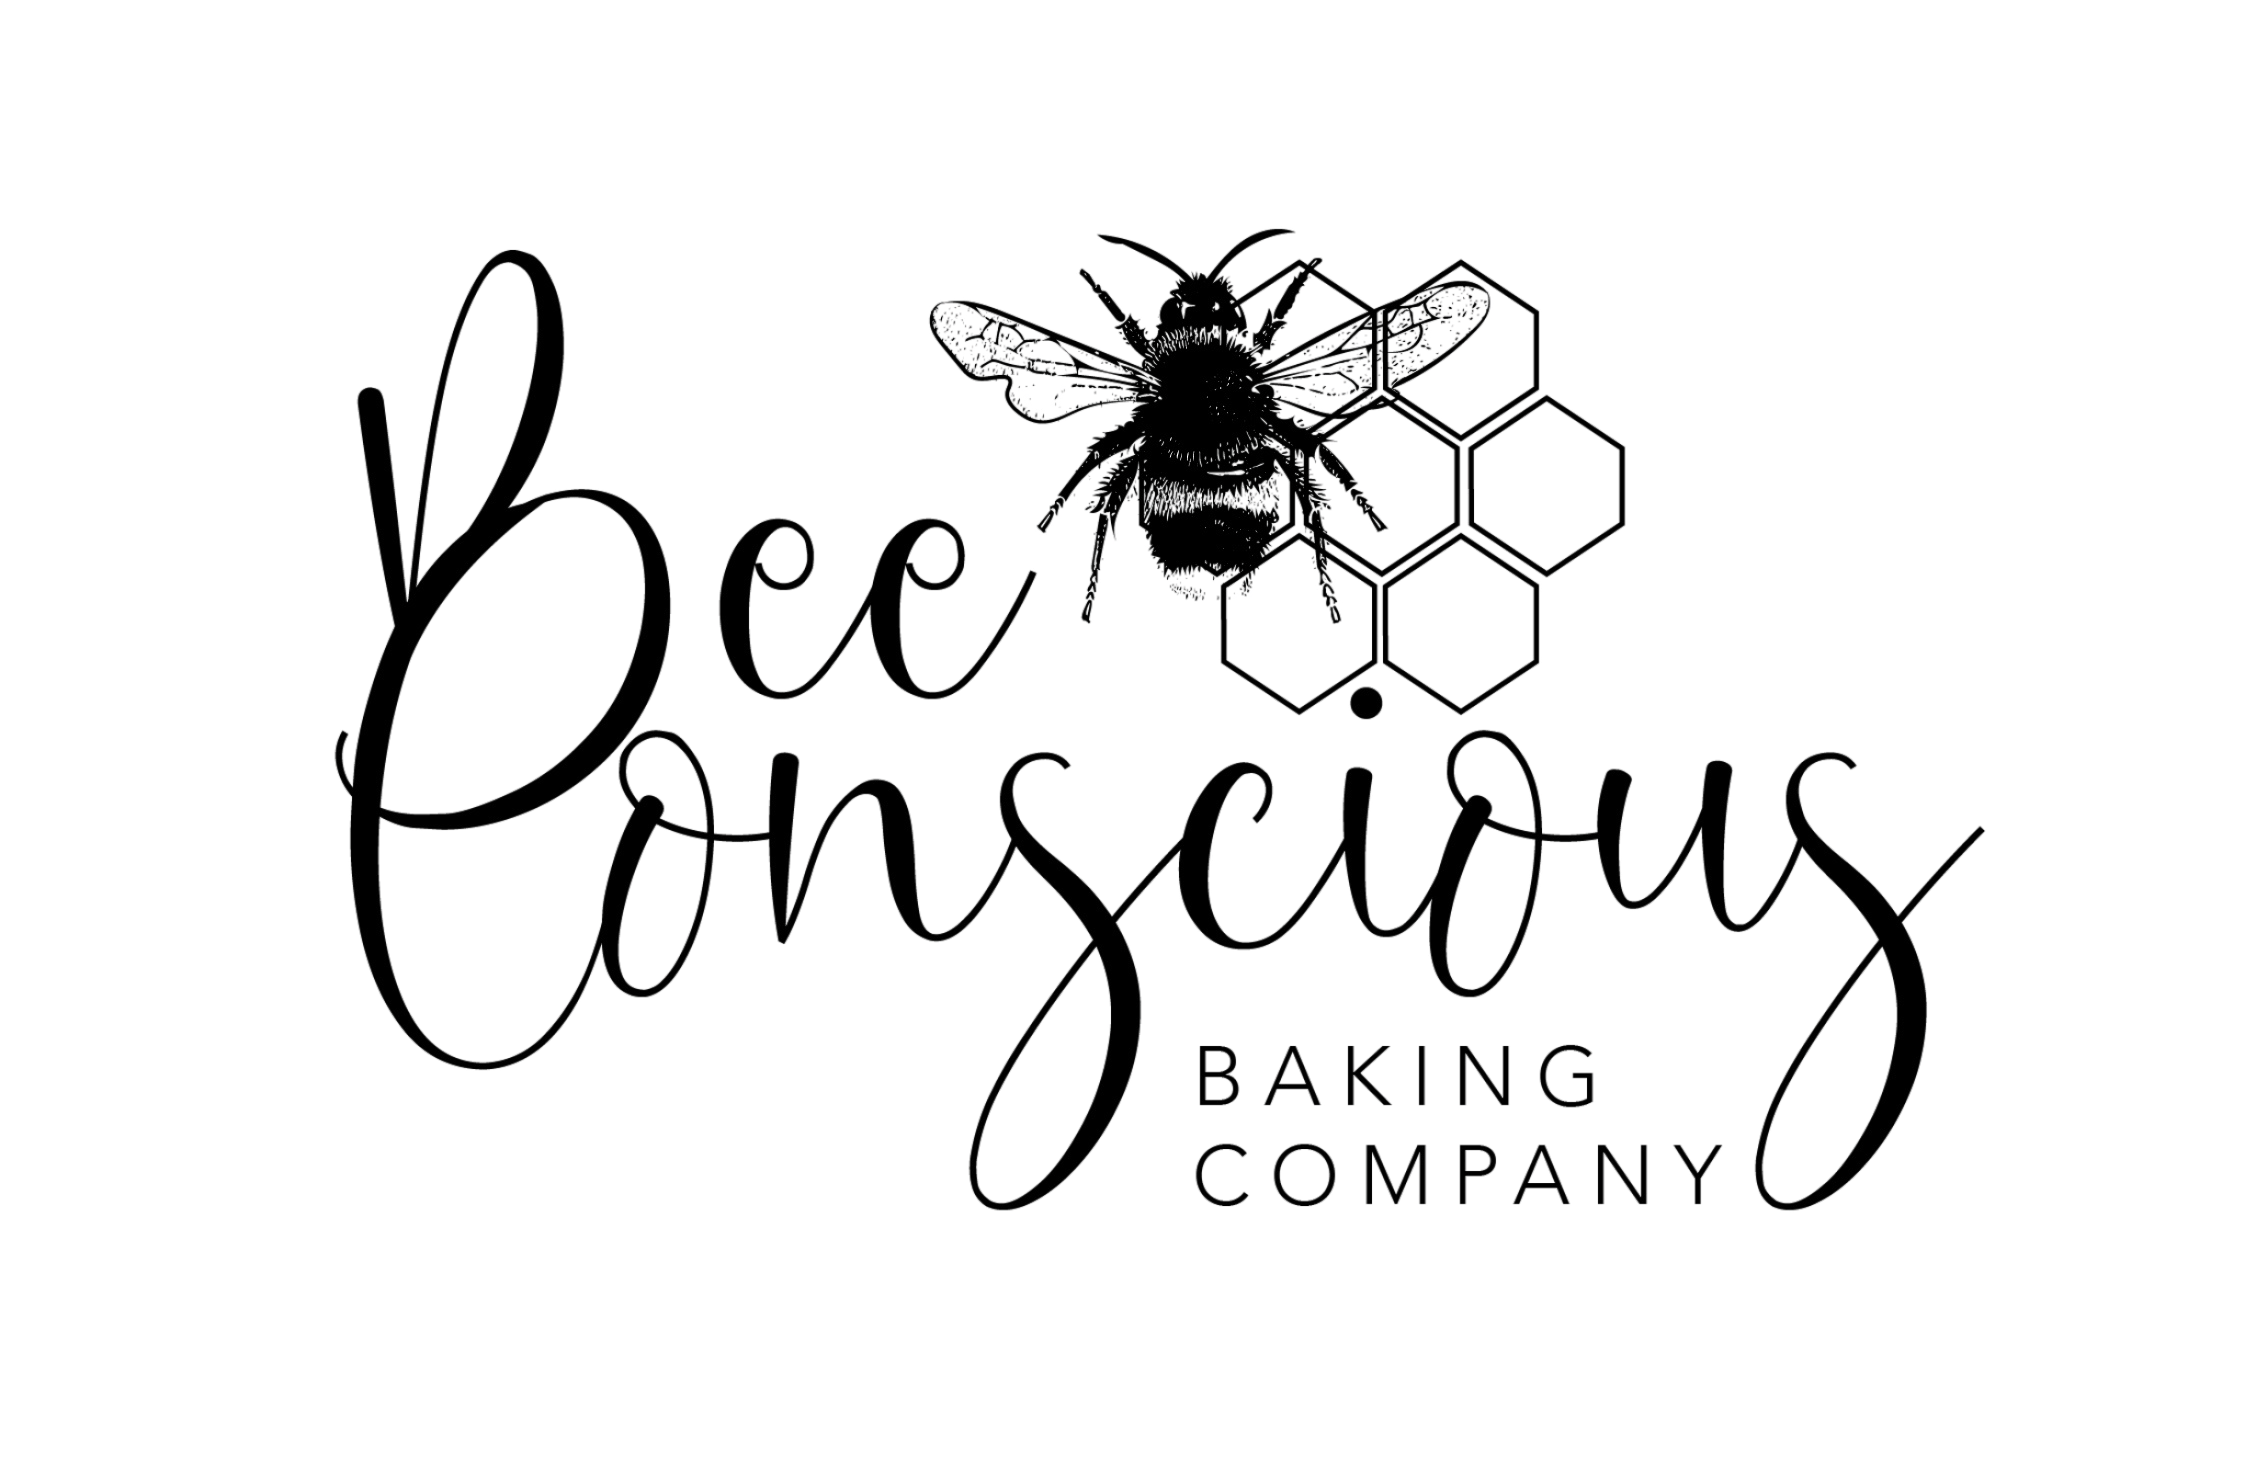 Bee Conscious Baking Co.